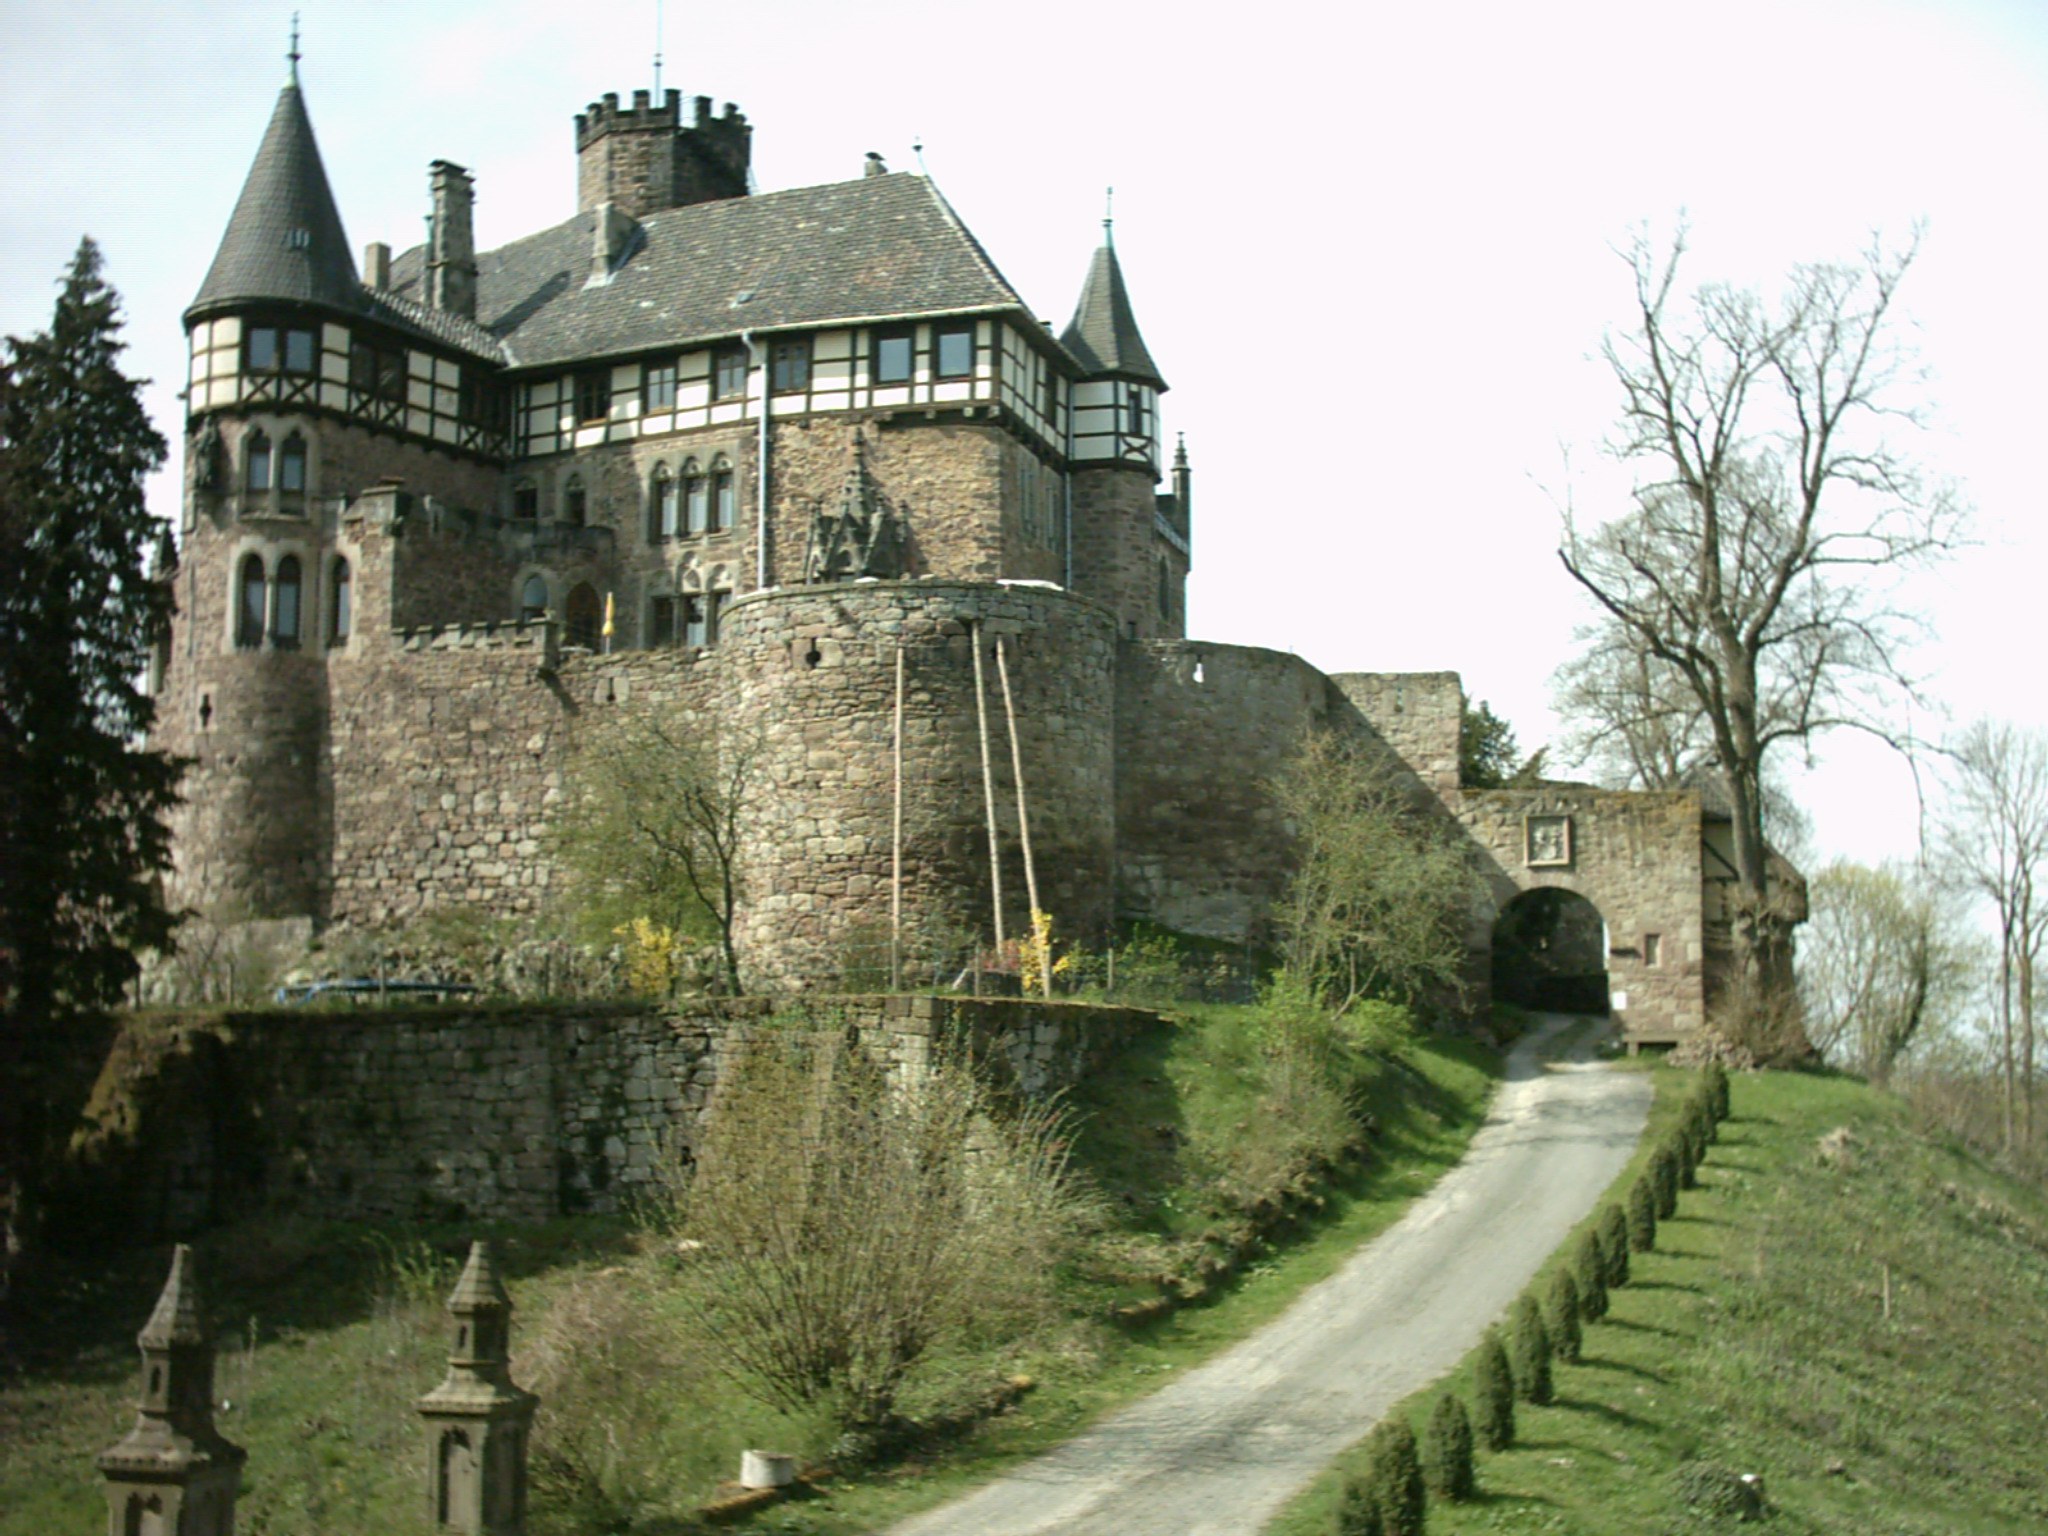 Billedresultat for Schloss Berlepsch